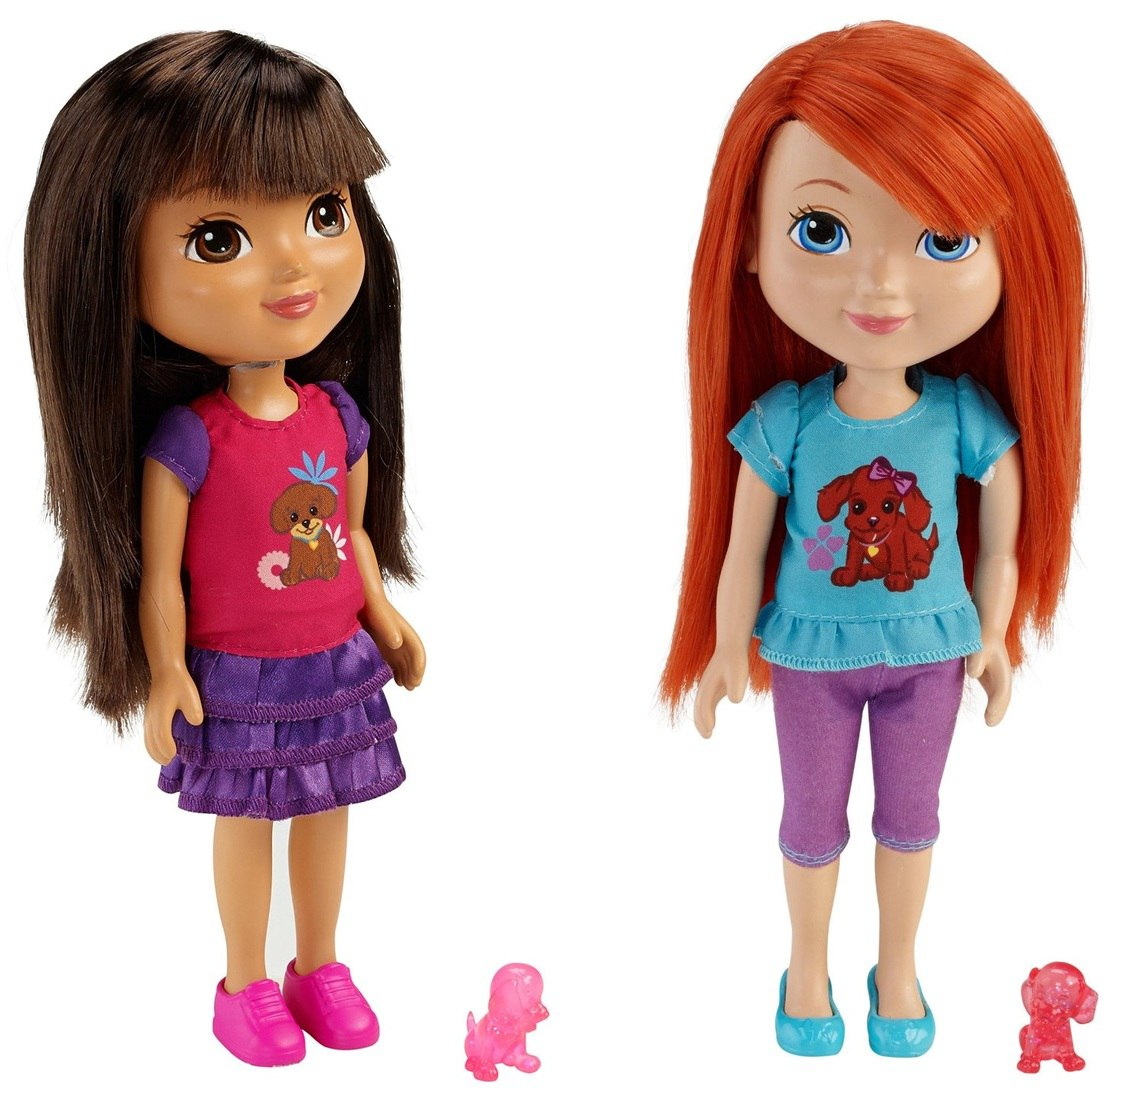 Toys And Friends : Review dora and friends doggie day dolls ⋆ mama geek